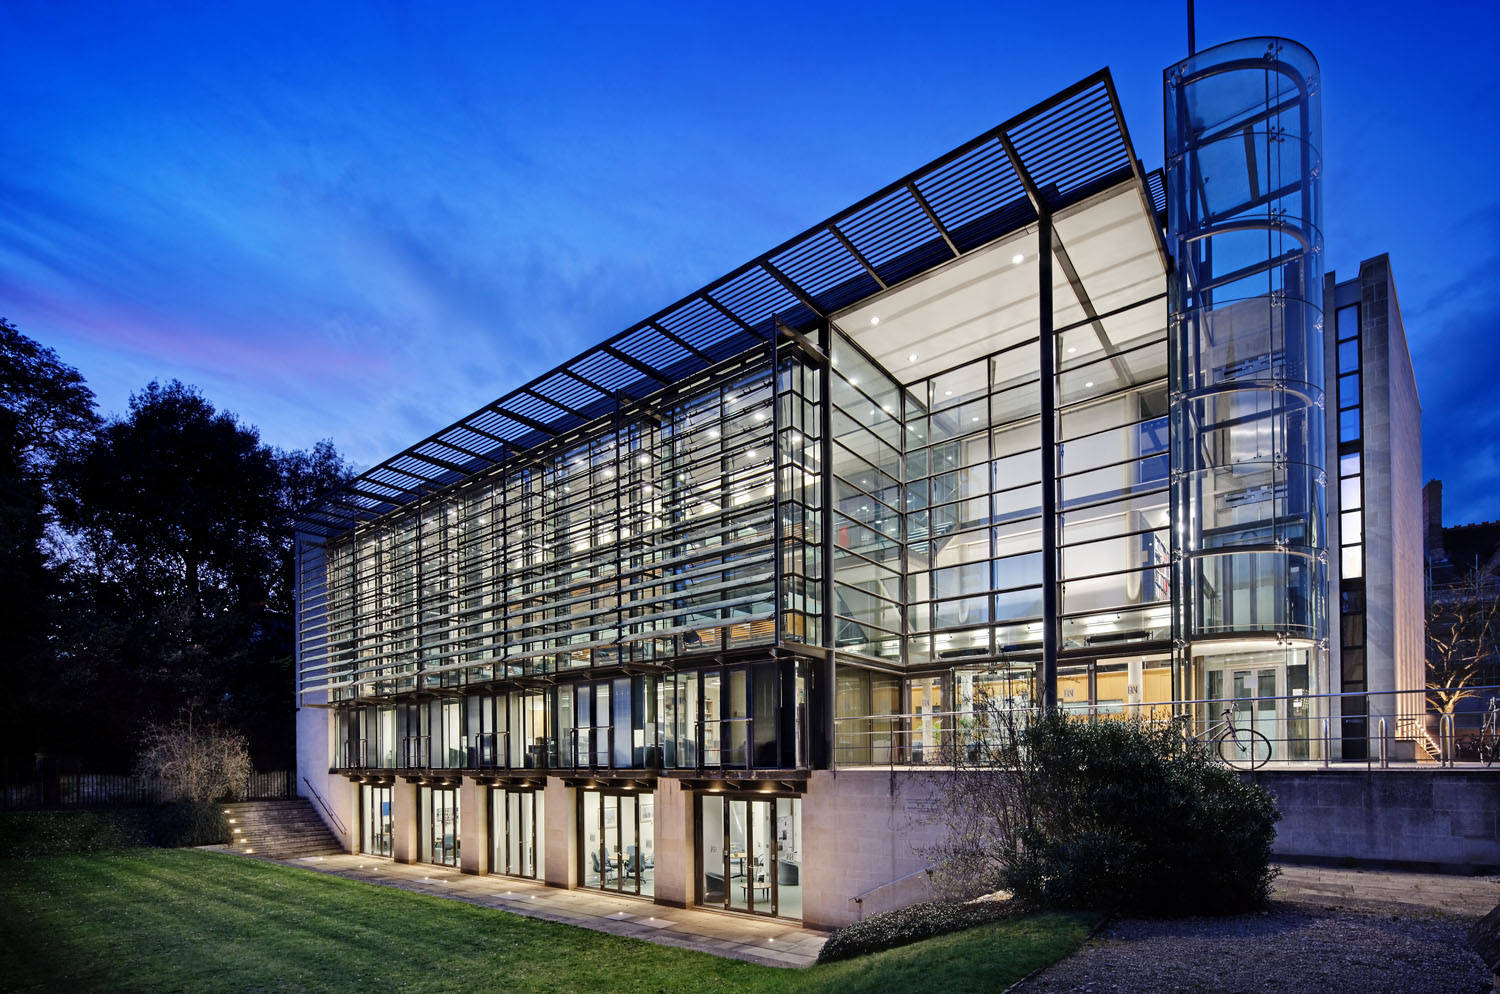 Rothermere American Institute, Oxford, UK